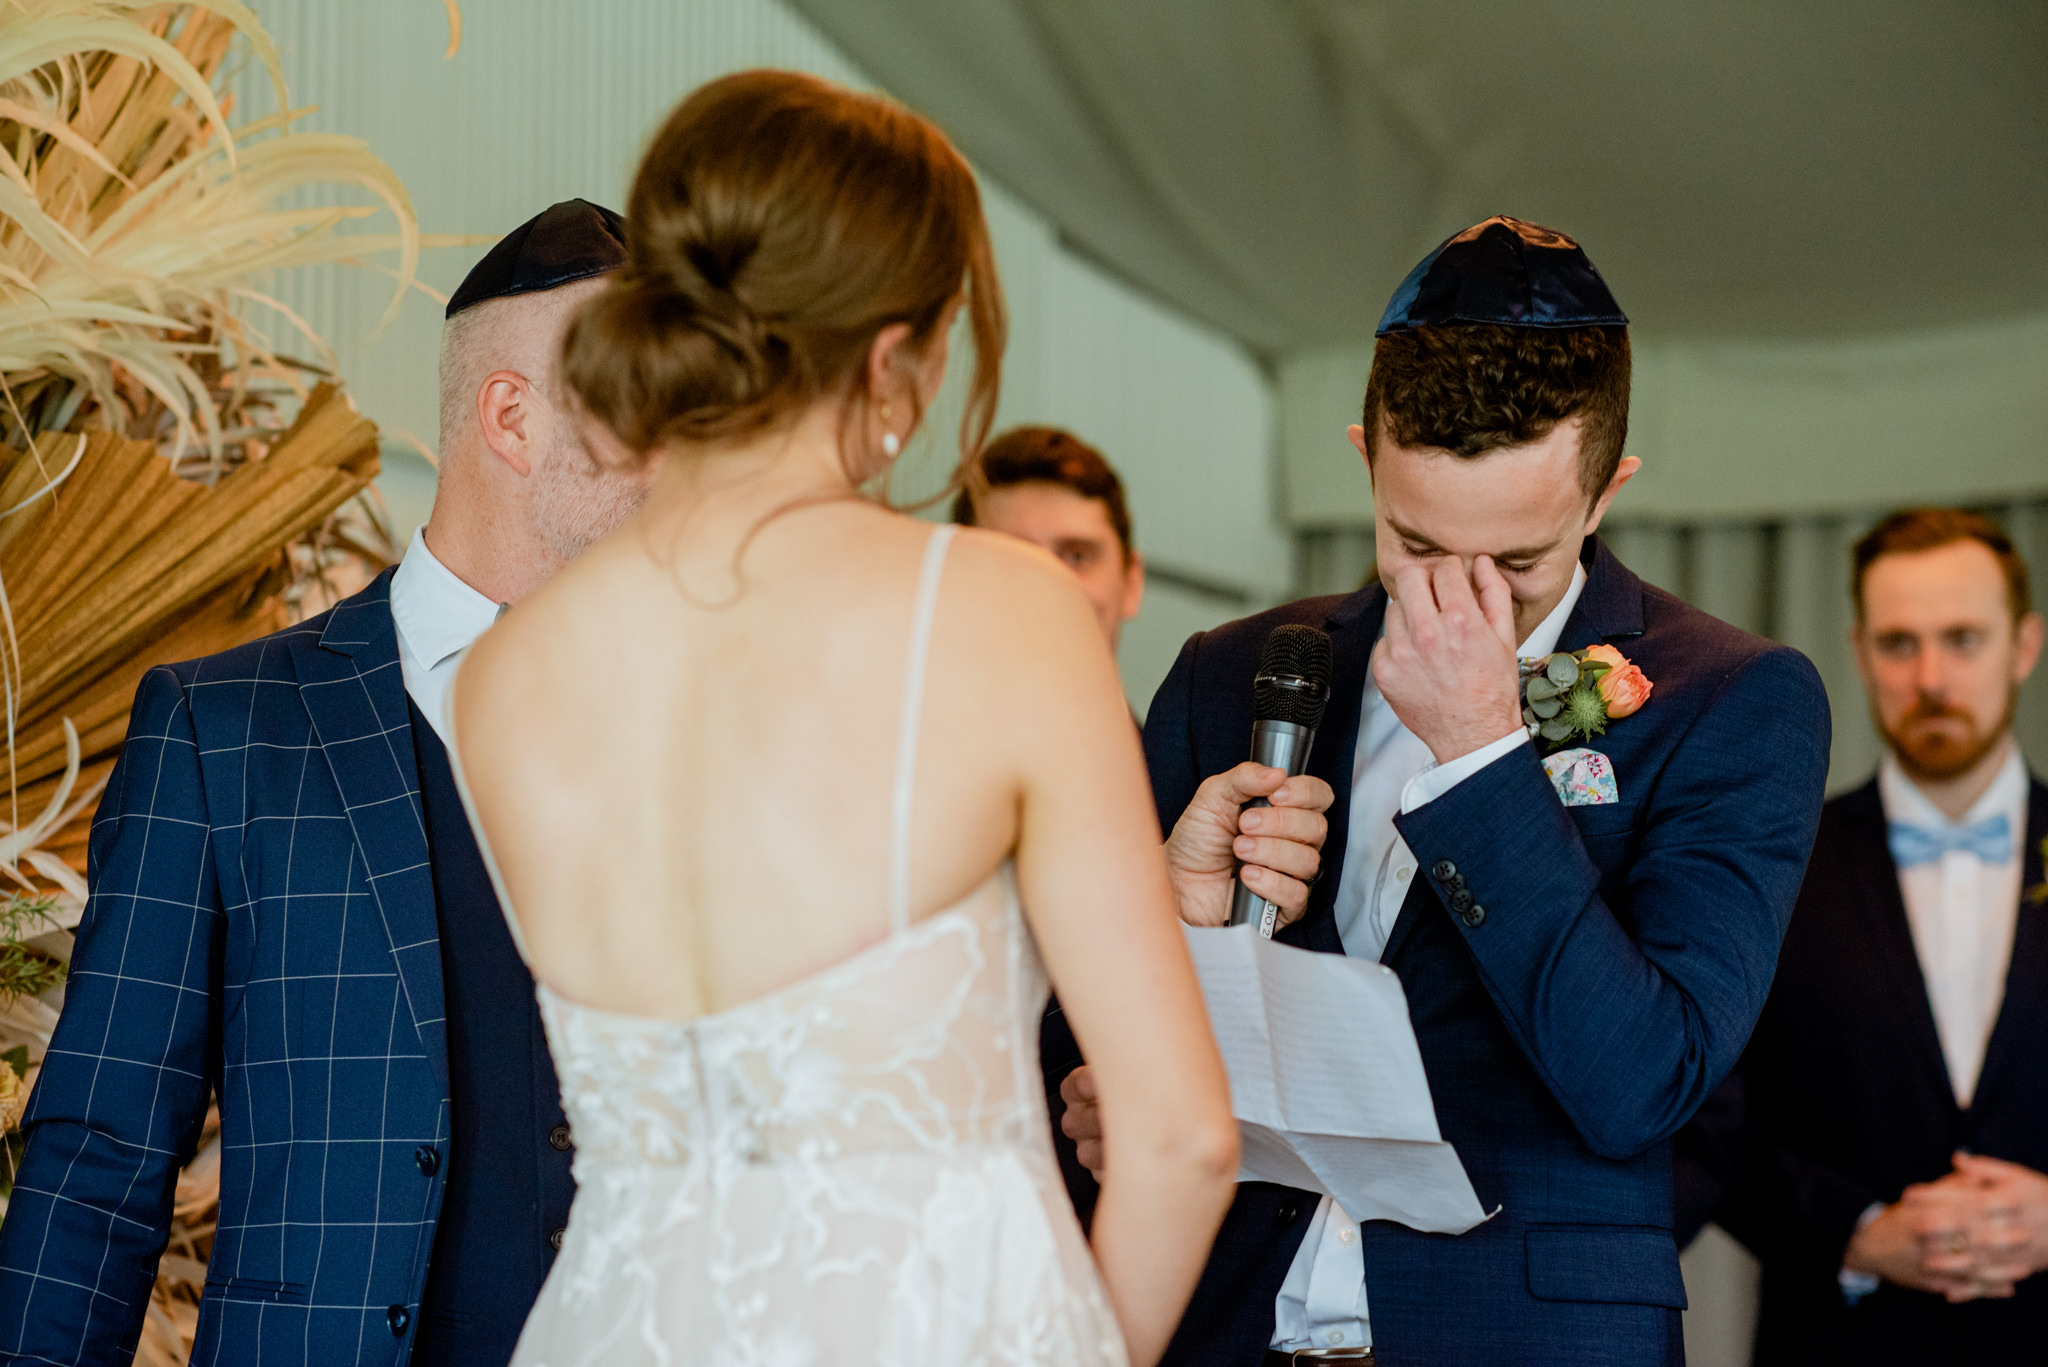 Groom cries as he delivers his wedding vows